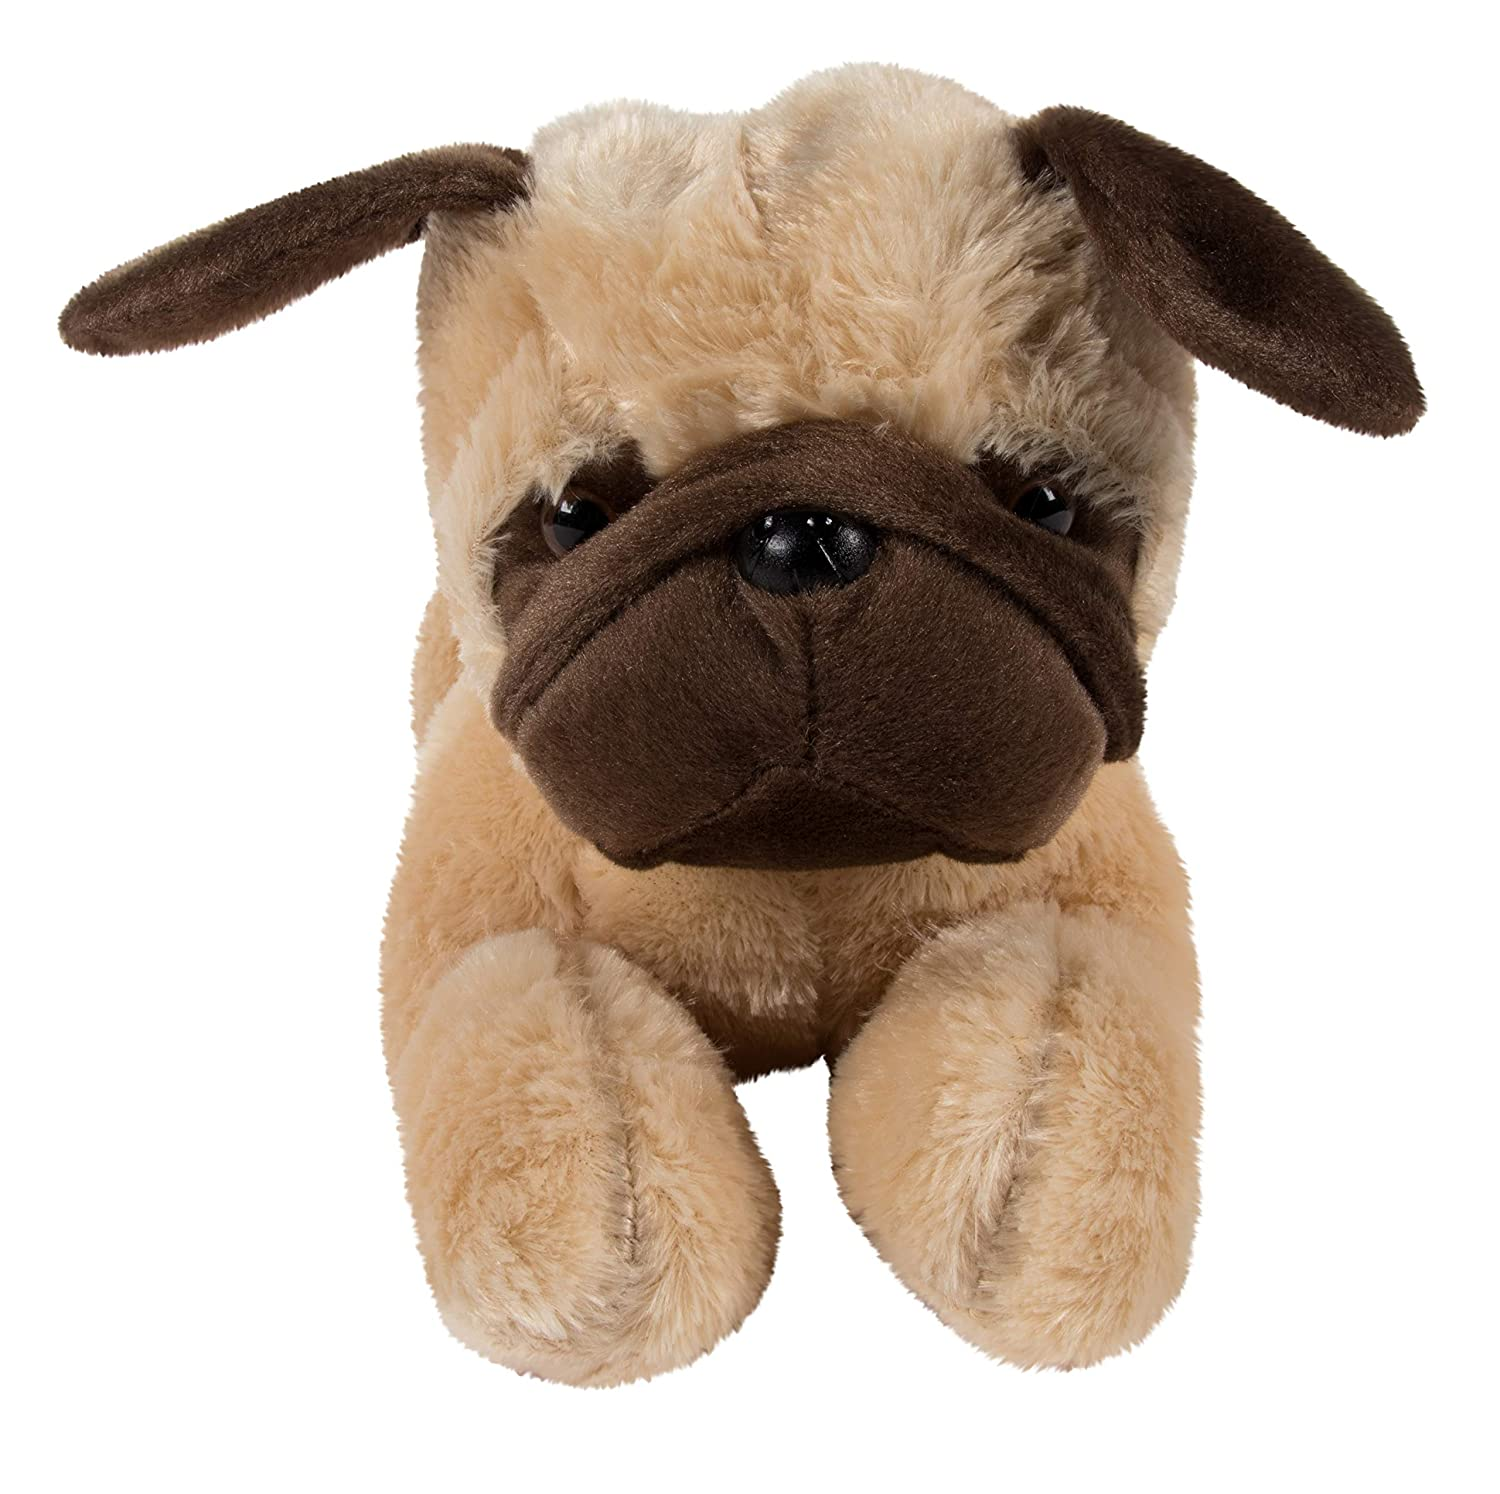 Party Prizes for Boys and Girls 15 x 6 x 6 Inches Otis The Pug Plush Toy Light Tan Soft Pillow Cushion Blue Panda Stuffed Animal Dog for Kids Birthday Gift